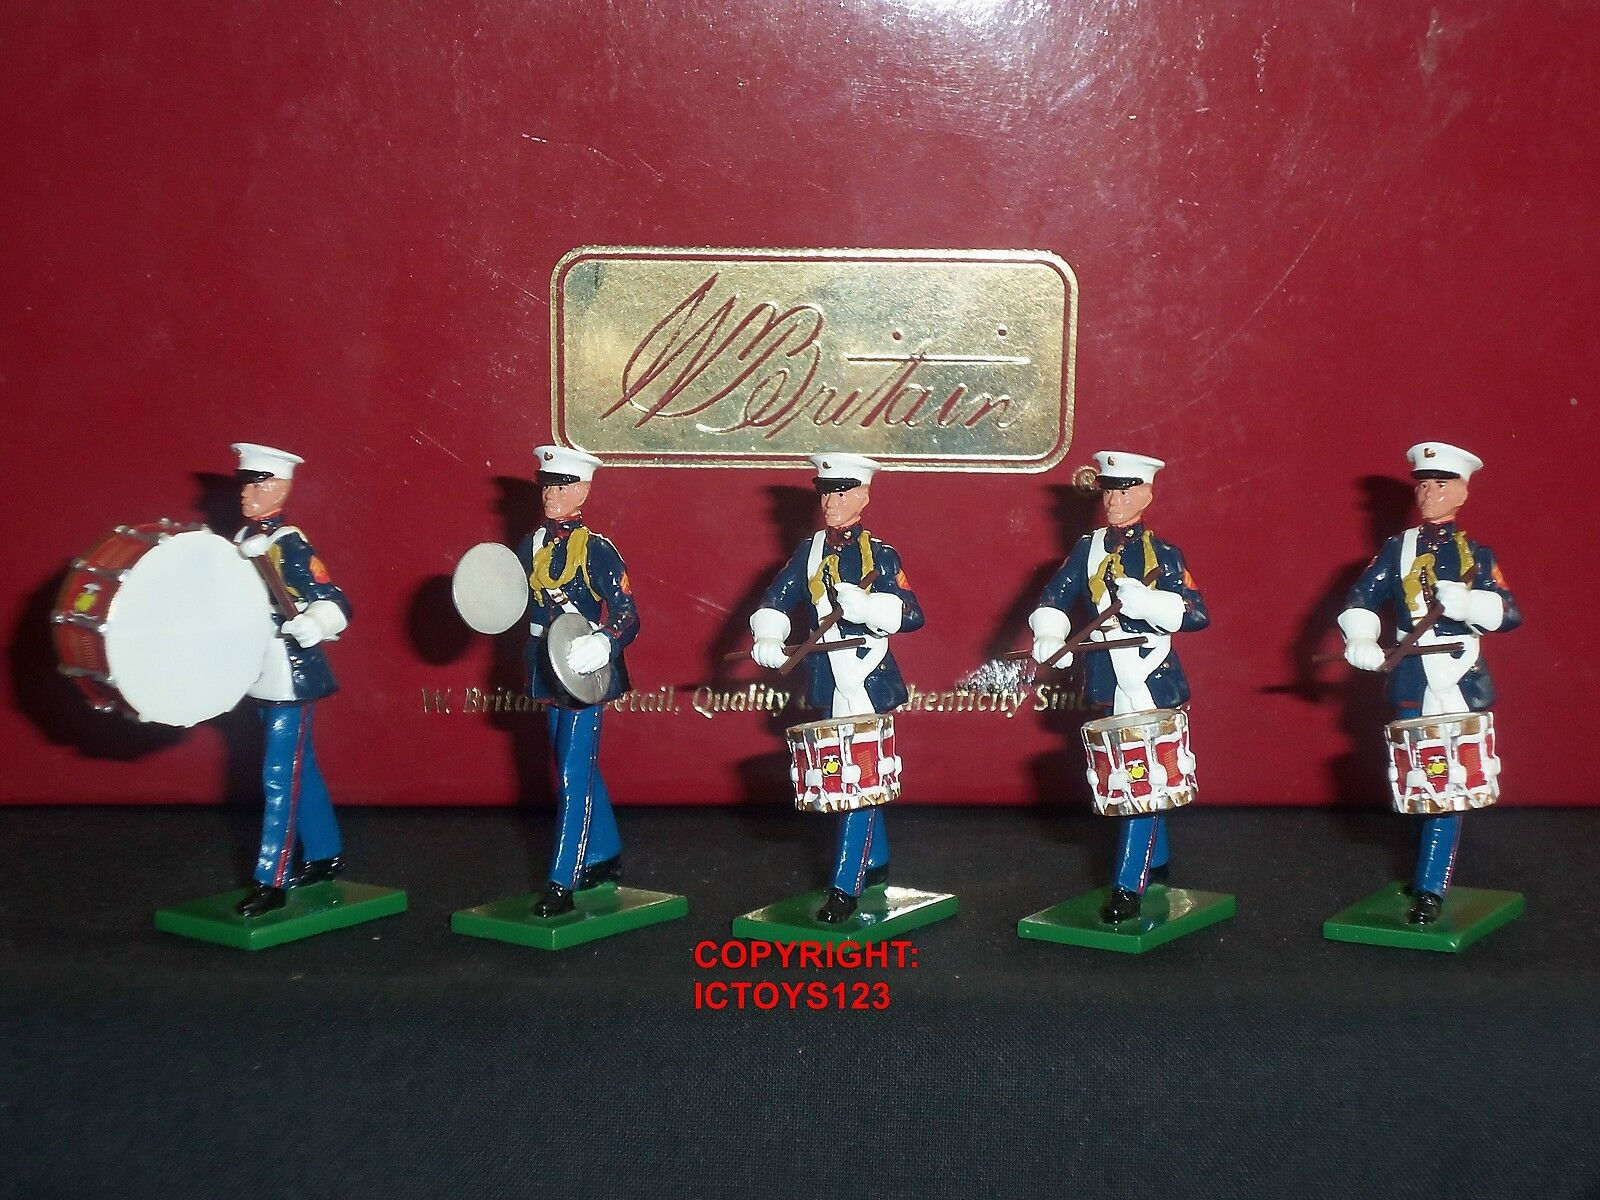 BRITAINS 17857 UNITED STATES MARINE CORPS DRUM + BUGLE ADD ON TOY SOLDIER SET